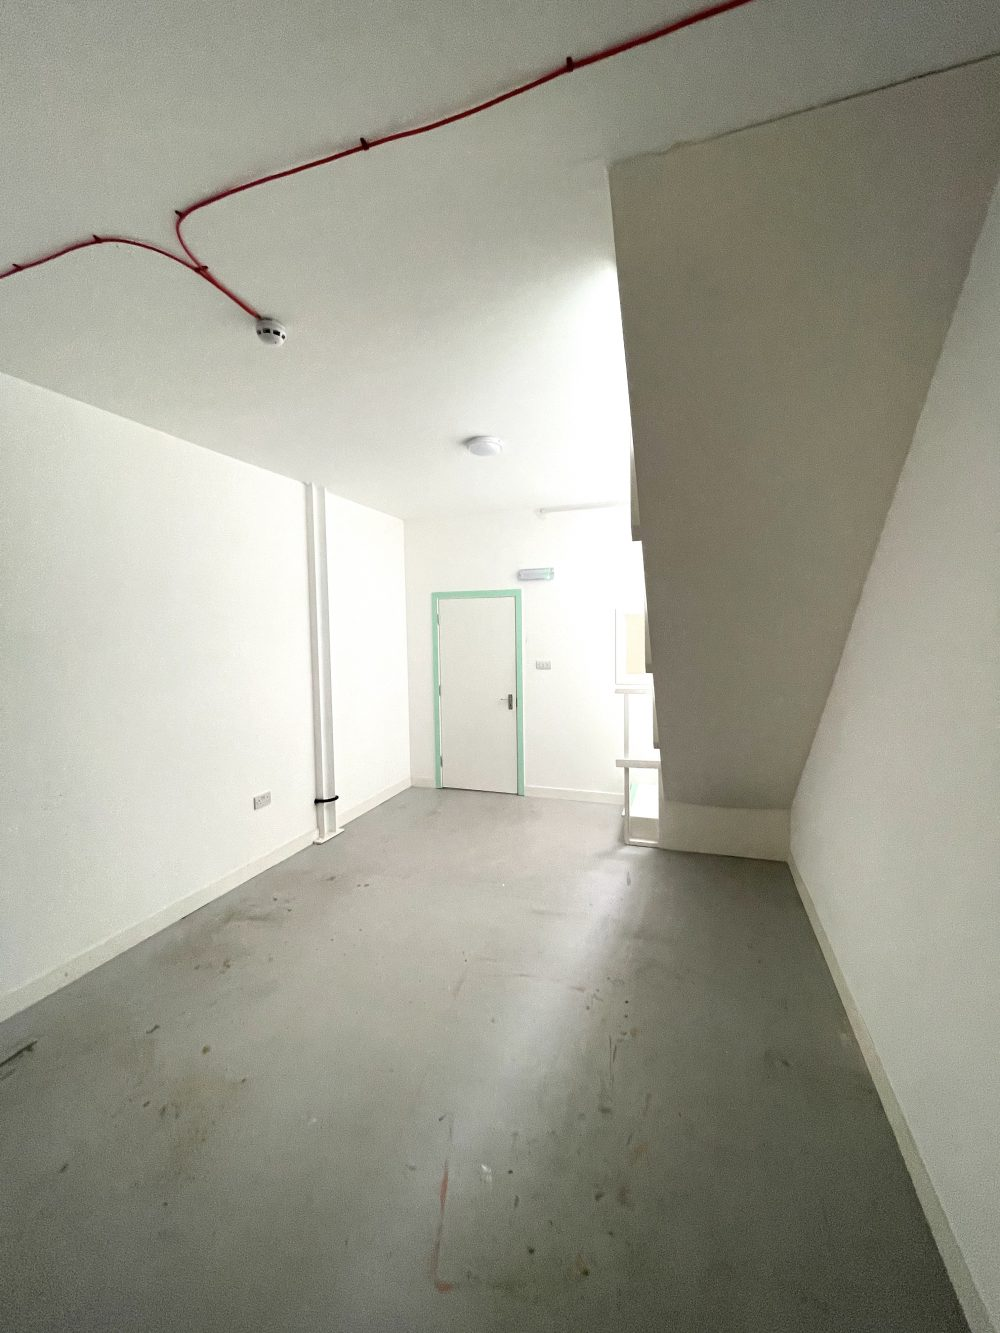 Studio Available to rent in N17 Mill Mead rd U5 Pic20